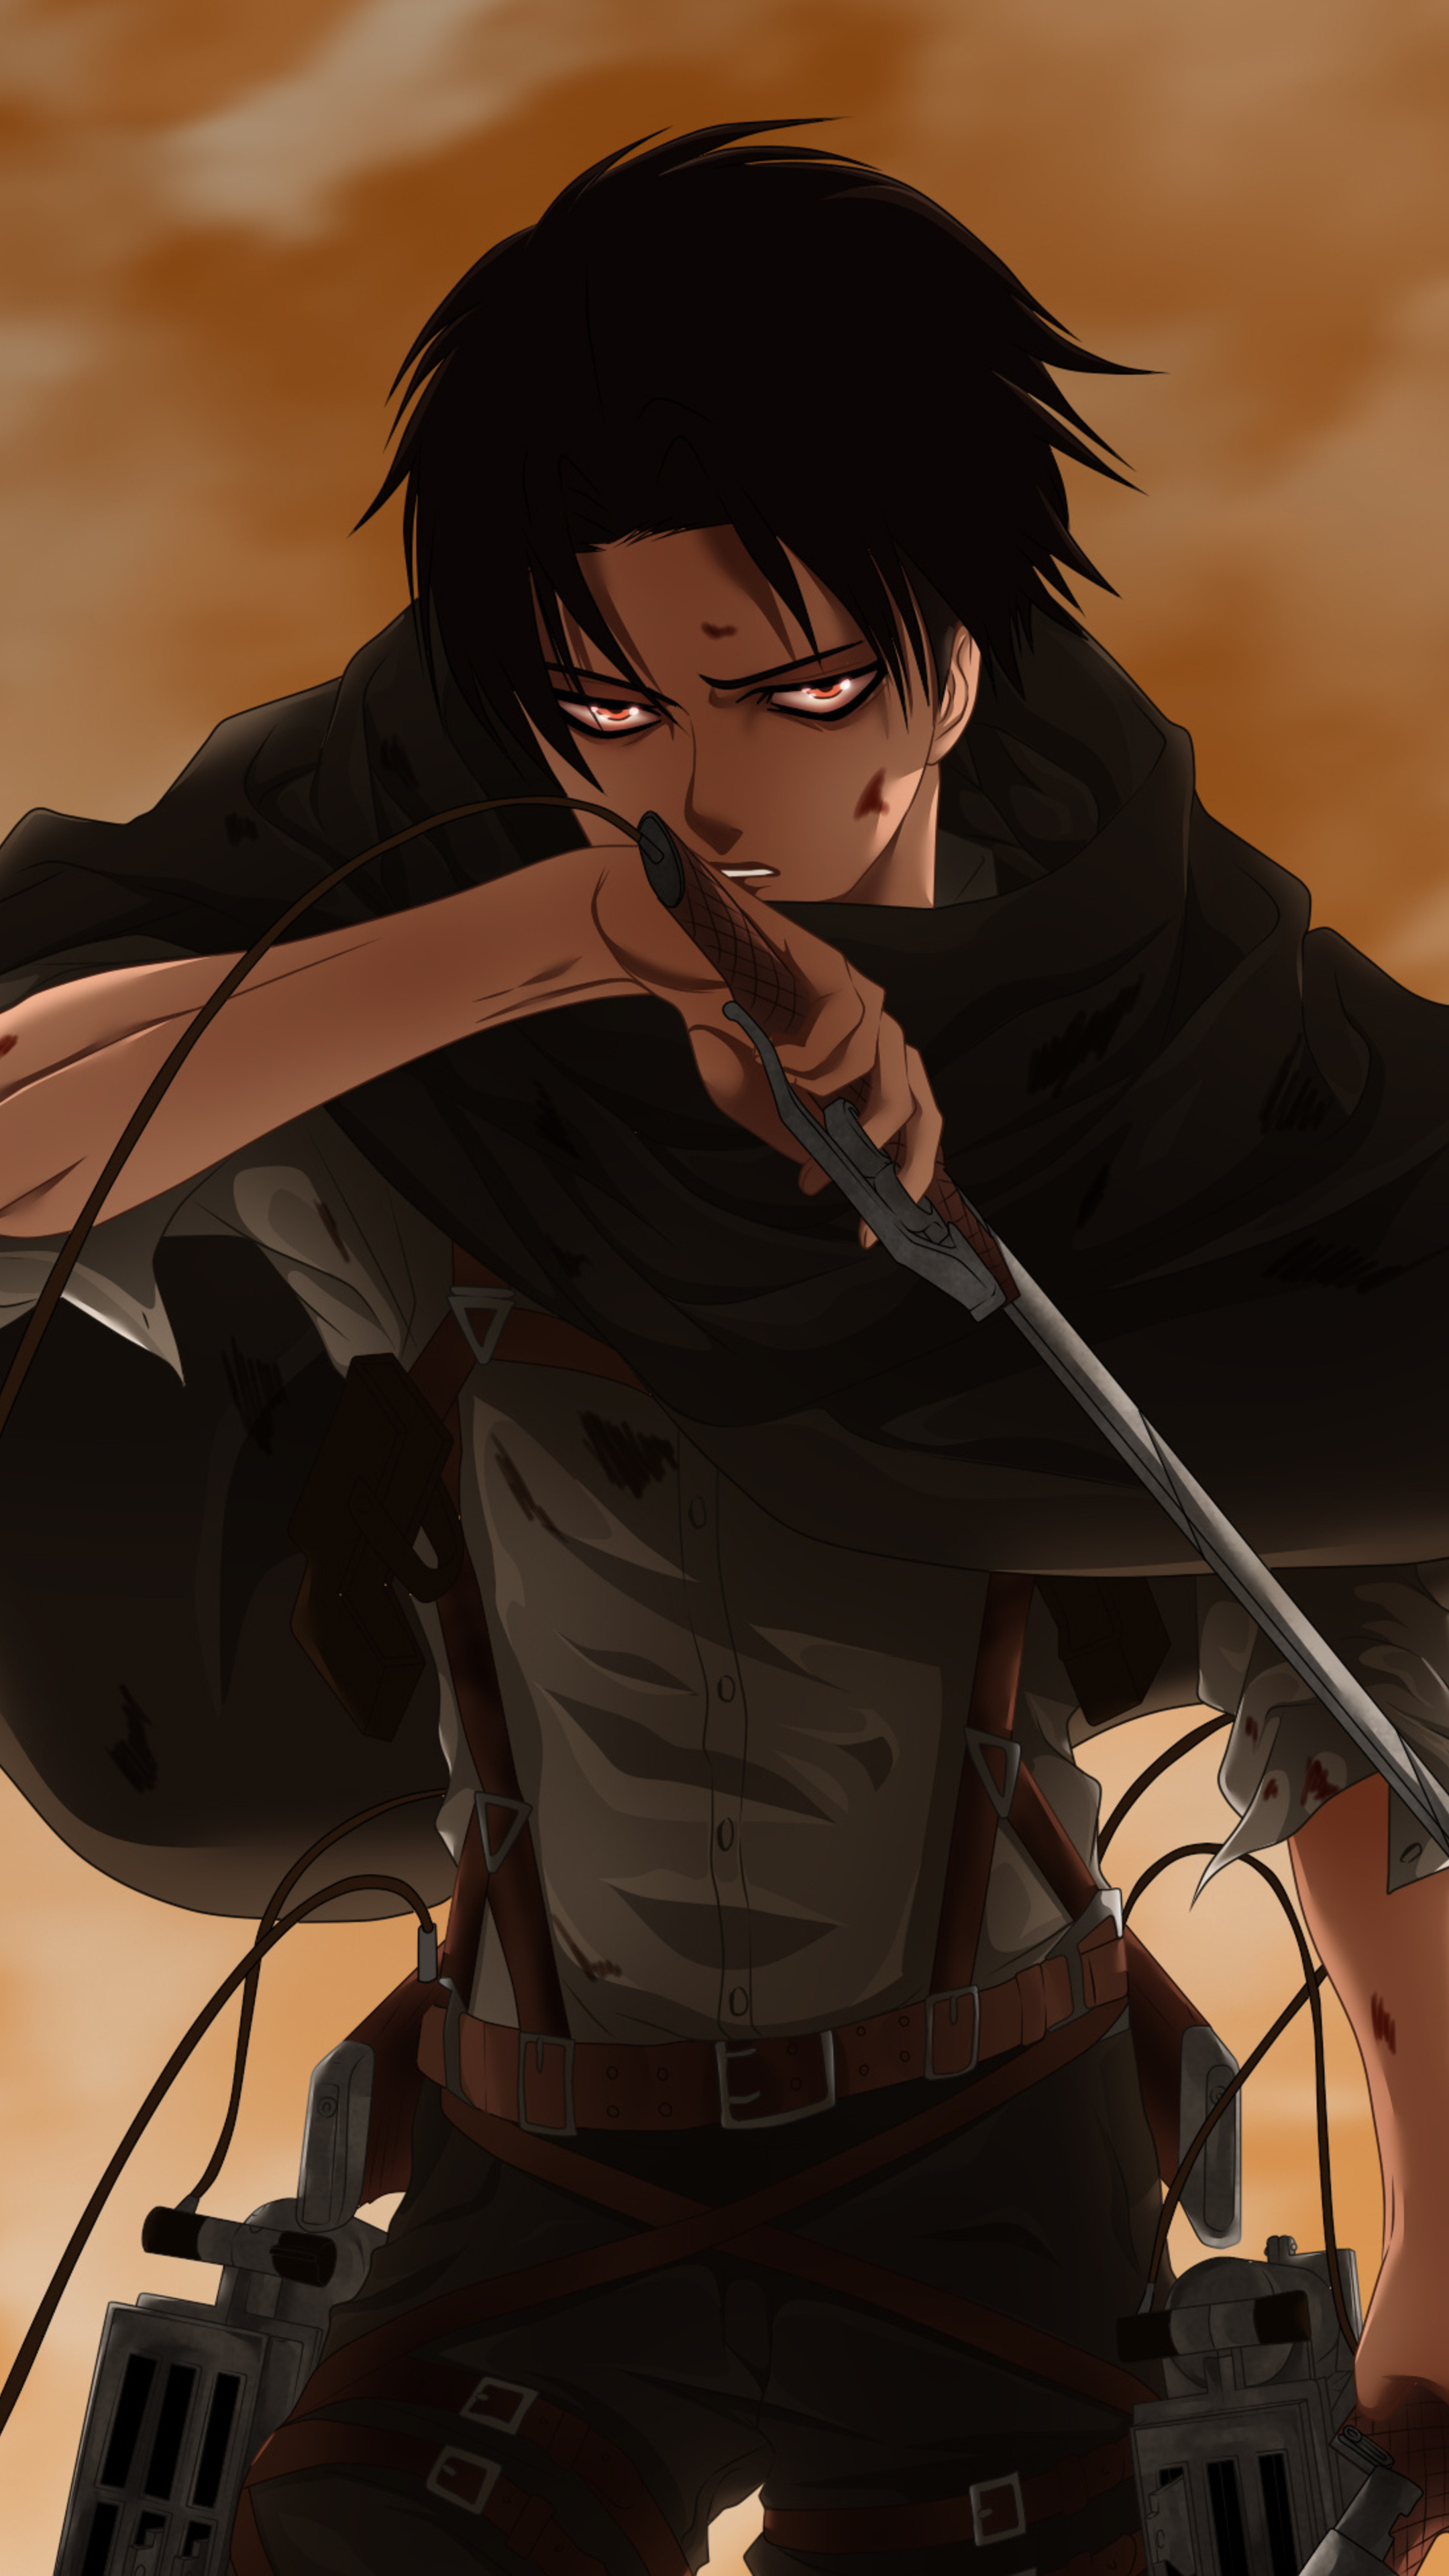 13 Anime Wallpaper 4k Attack On Titan Sachi Wallpaper